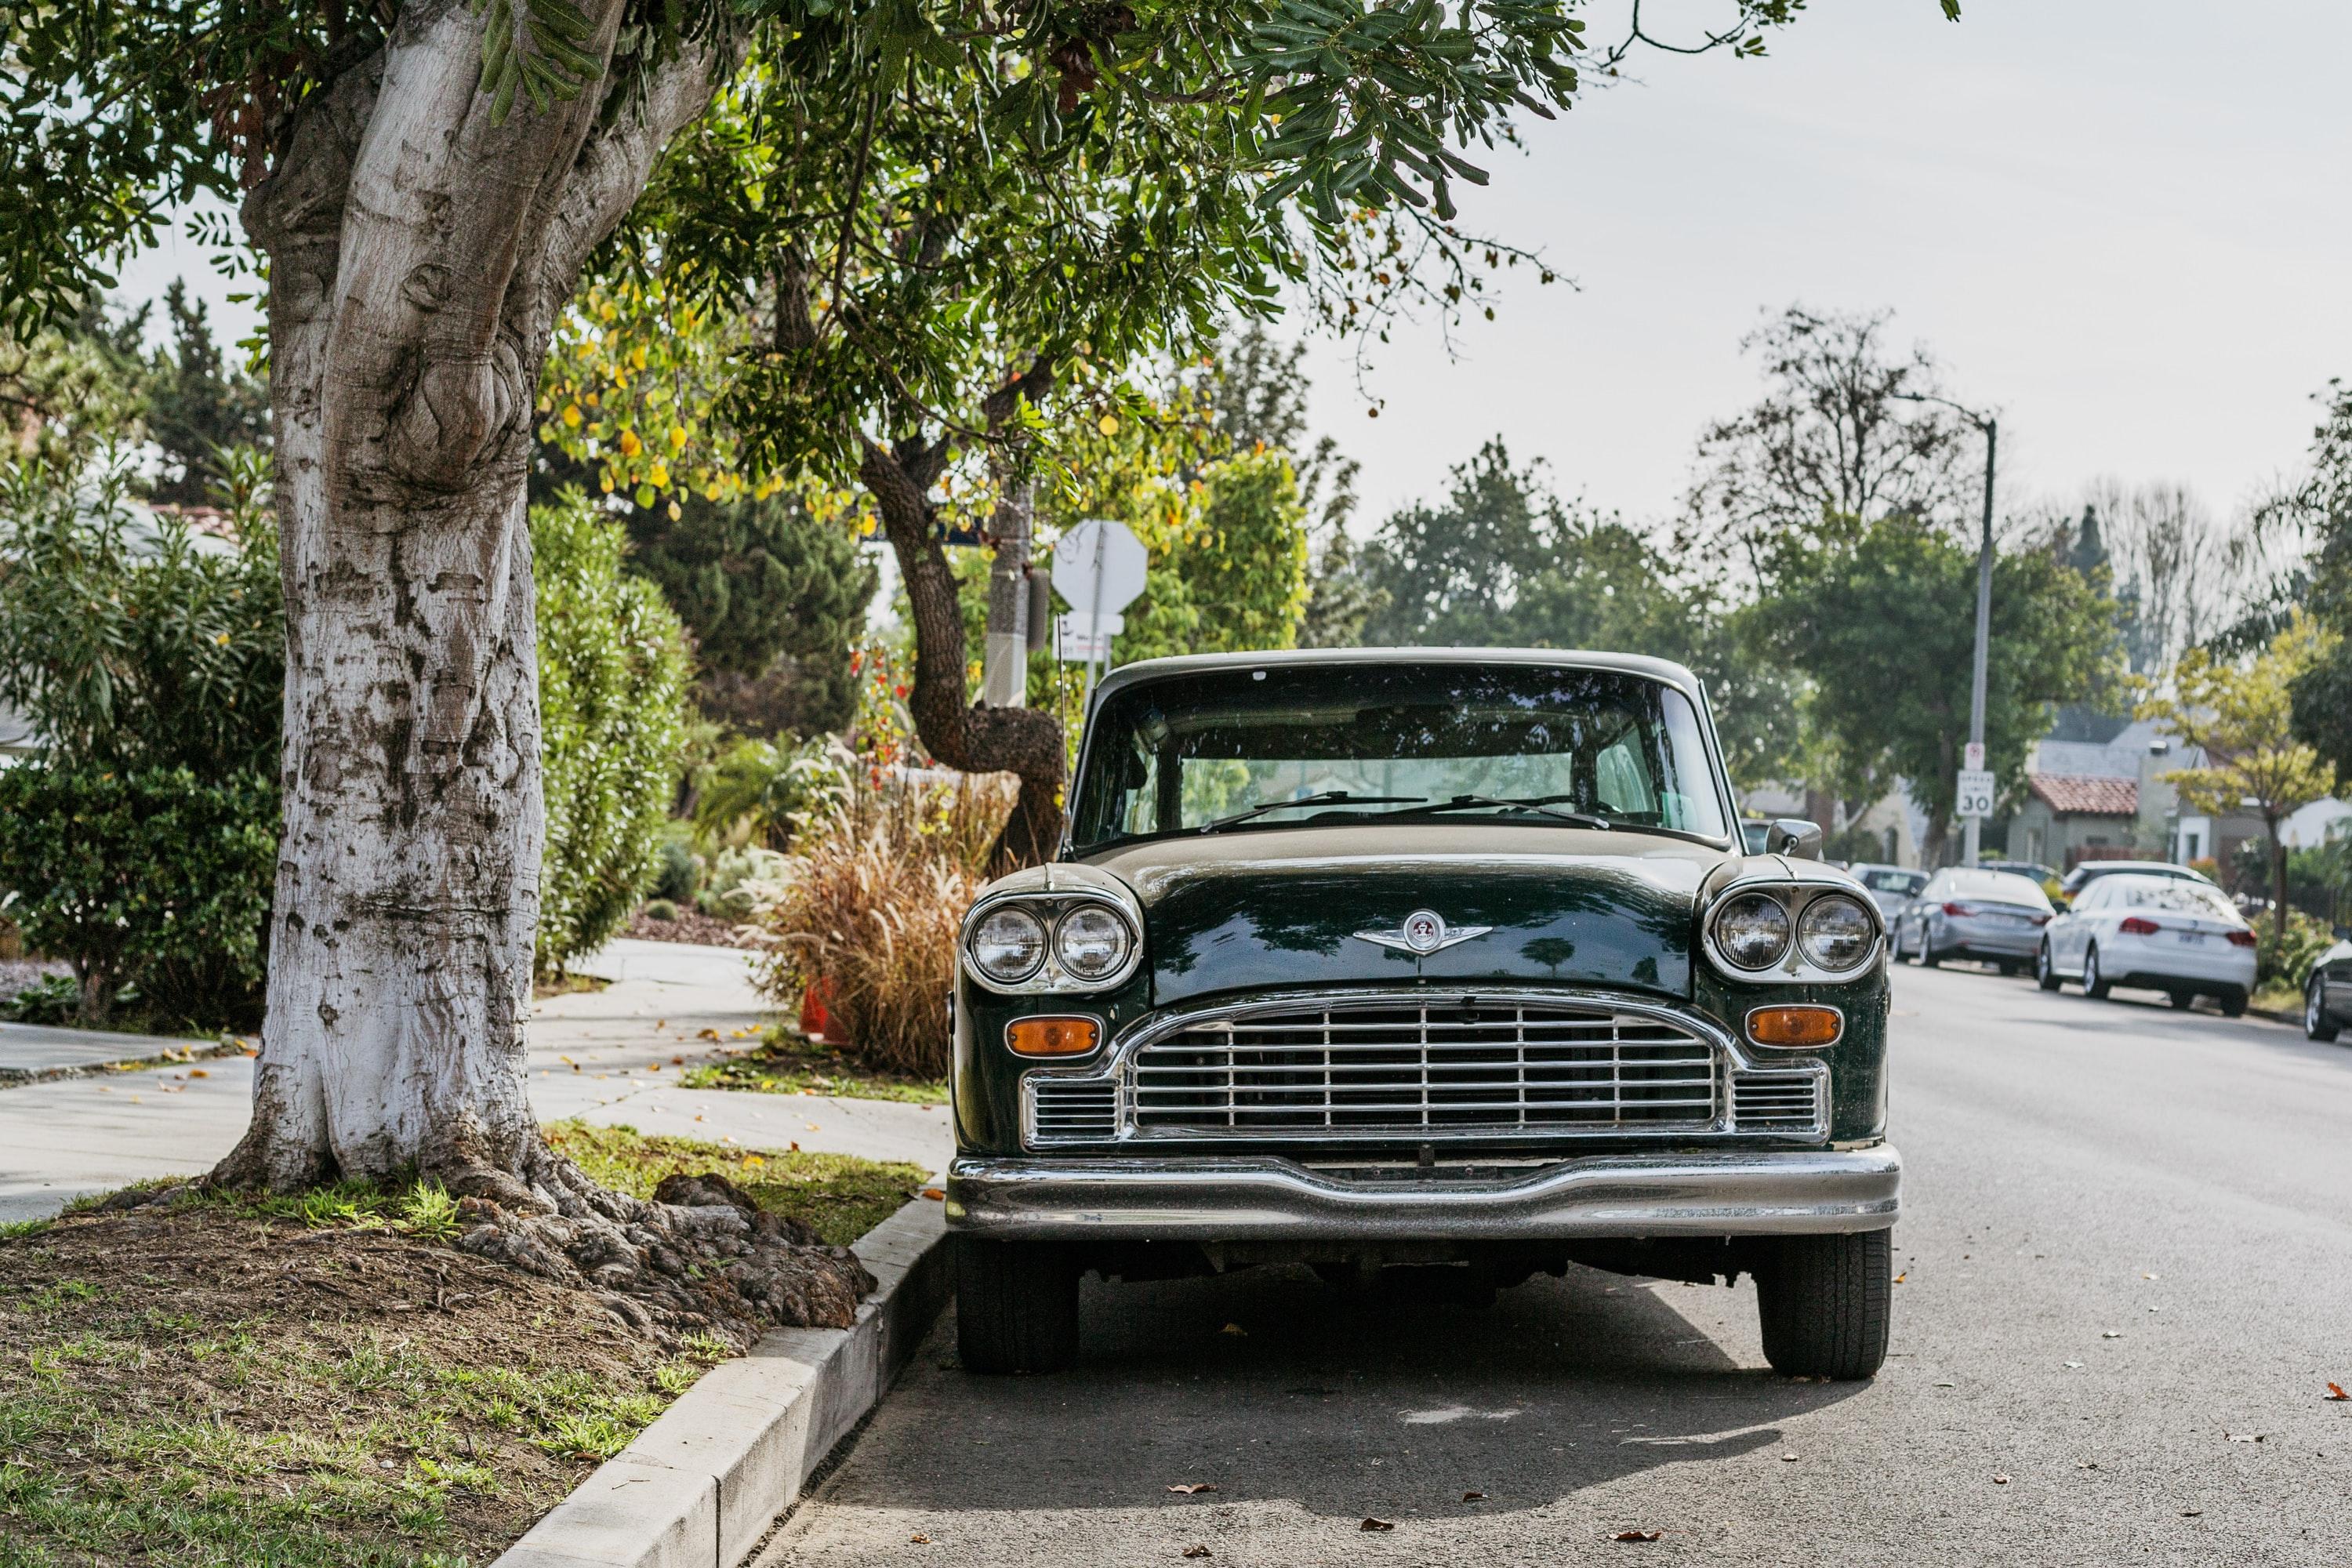 A vintage car parked on a street under a tree in a residential area